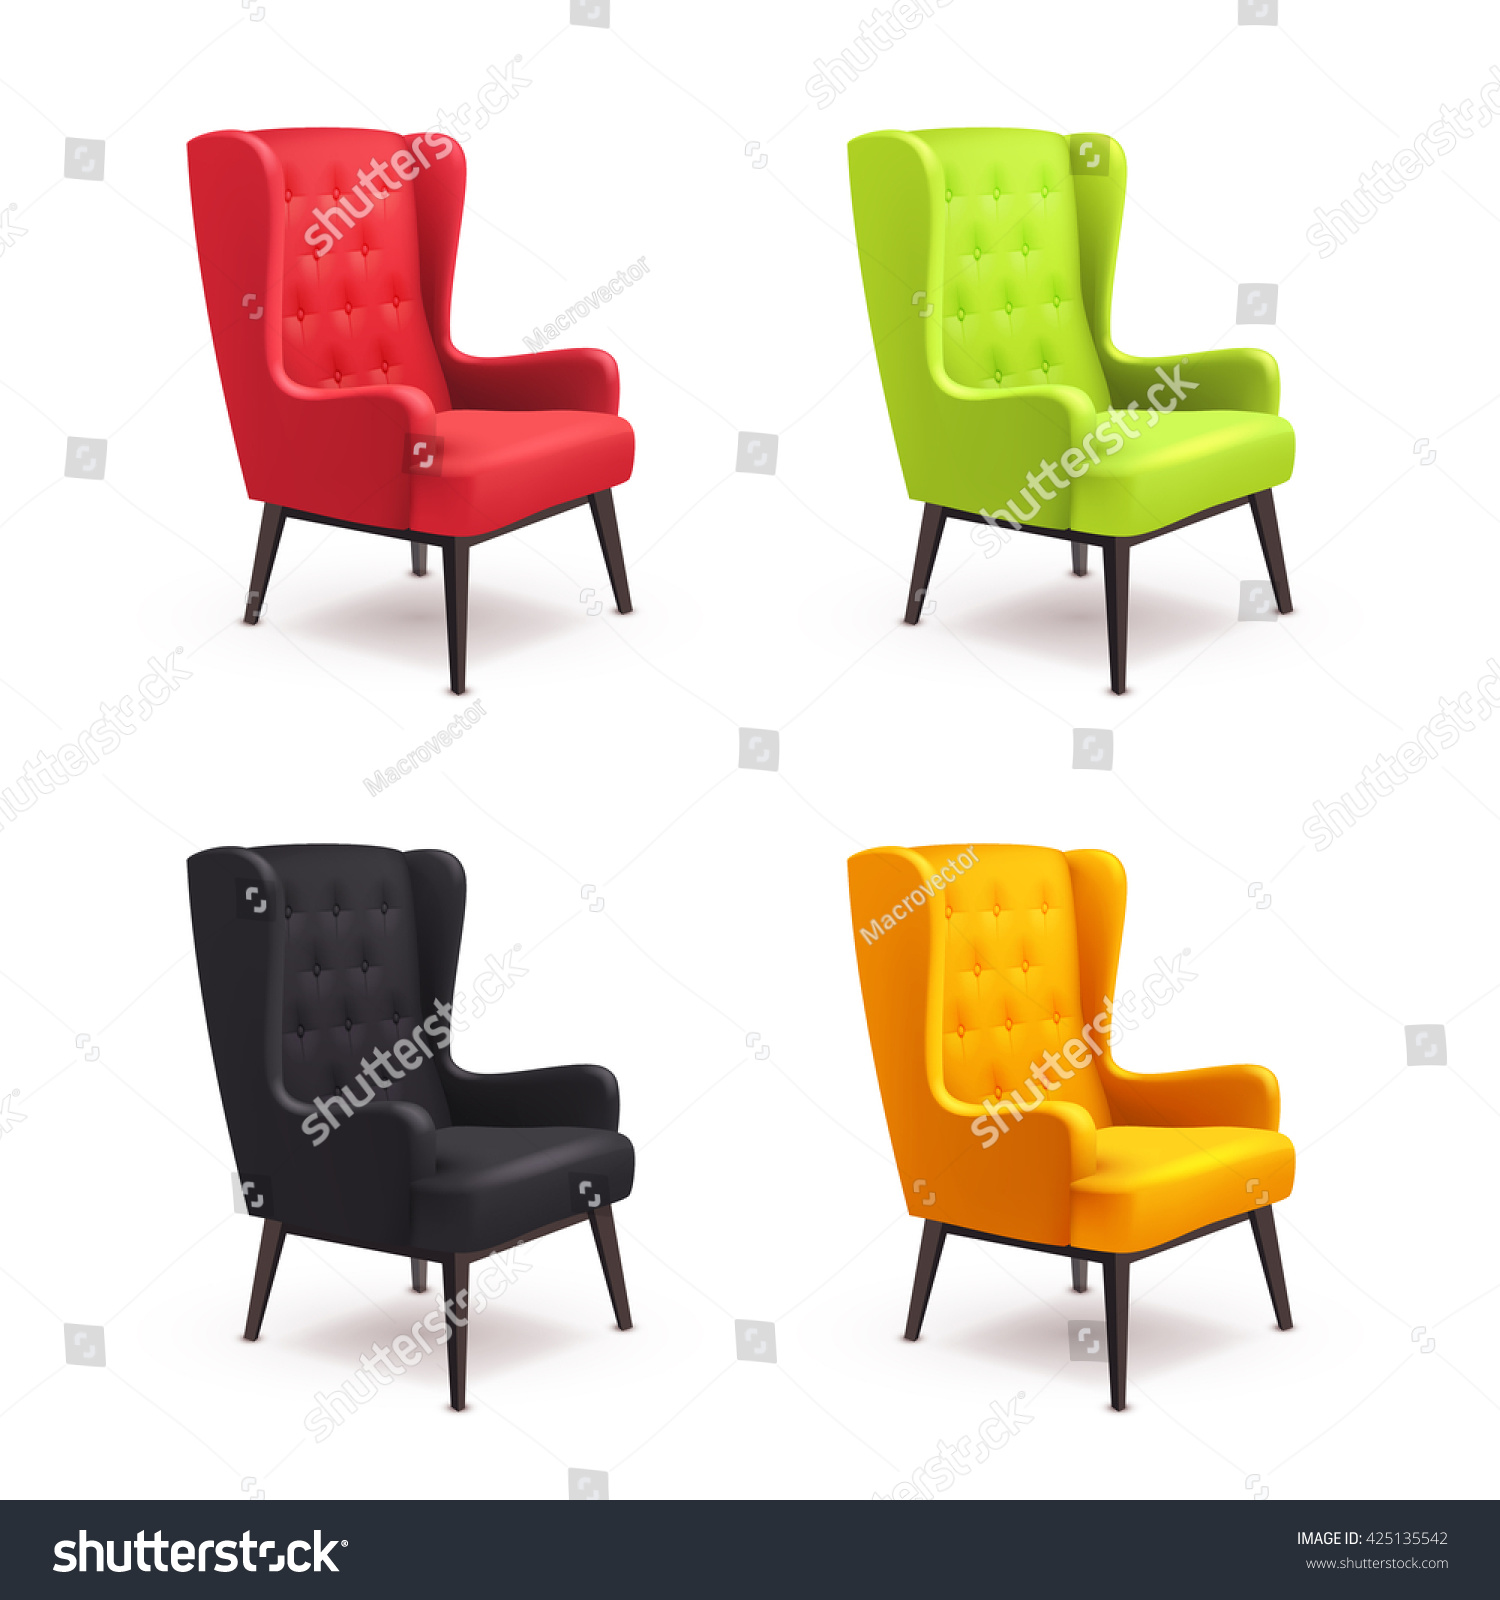 Colorful Wooden Chairs Chair Realistic Icon Set Four Identical Stock Vector